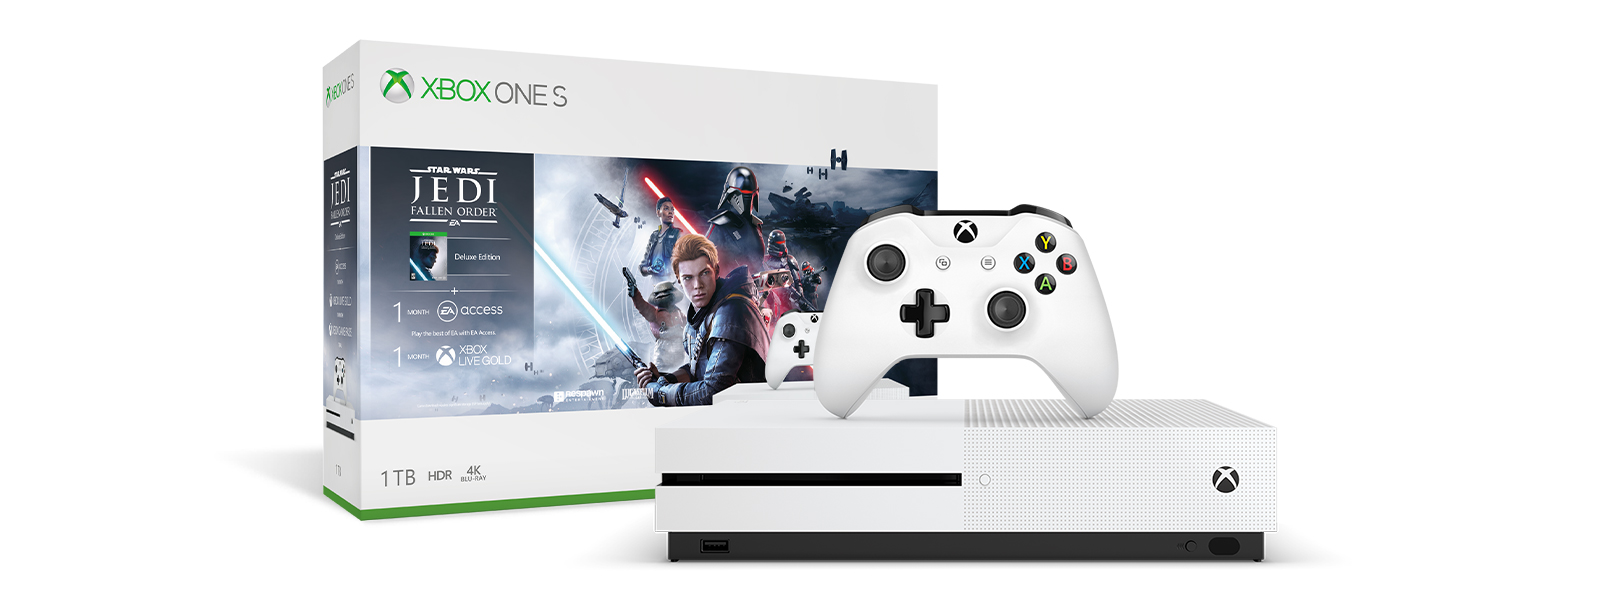 Xbox One S Star Wars Jedi Fallen Order product box and Xbox One S